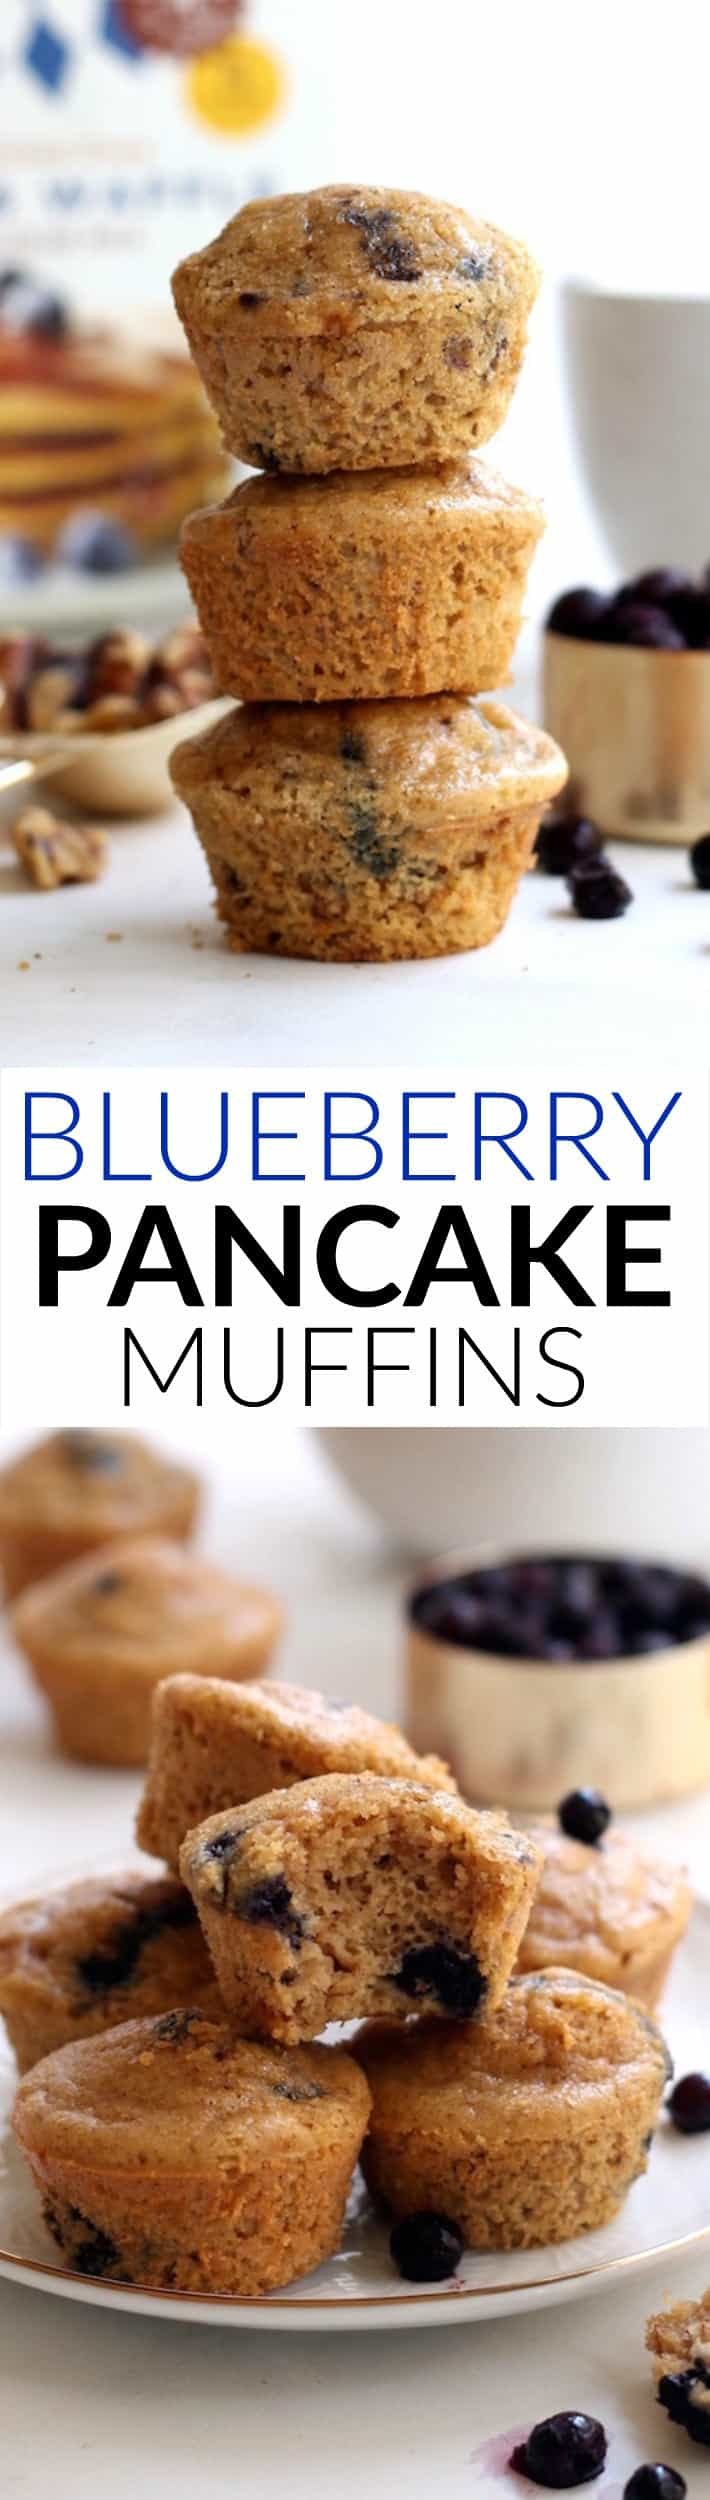 Fluffy, wholesome, grain-free pancakes in muffin form! These flourless Mini Blueberry Walnut Pancake Muffins are the perfect on-the-go breakfast or snack.